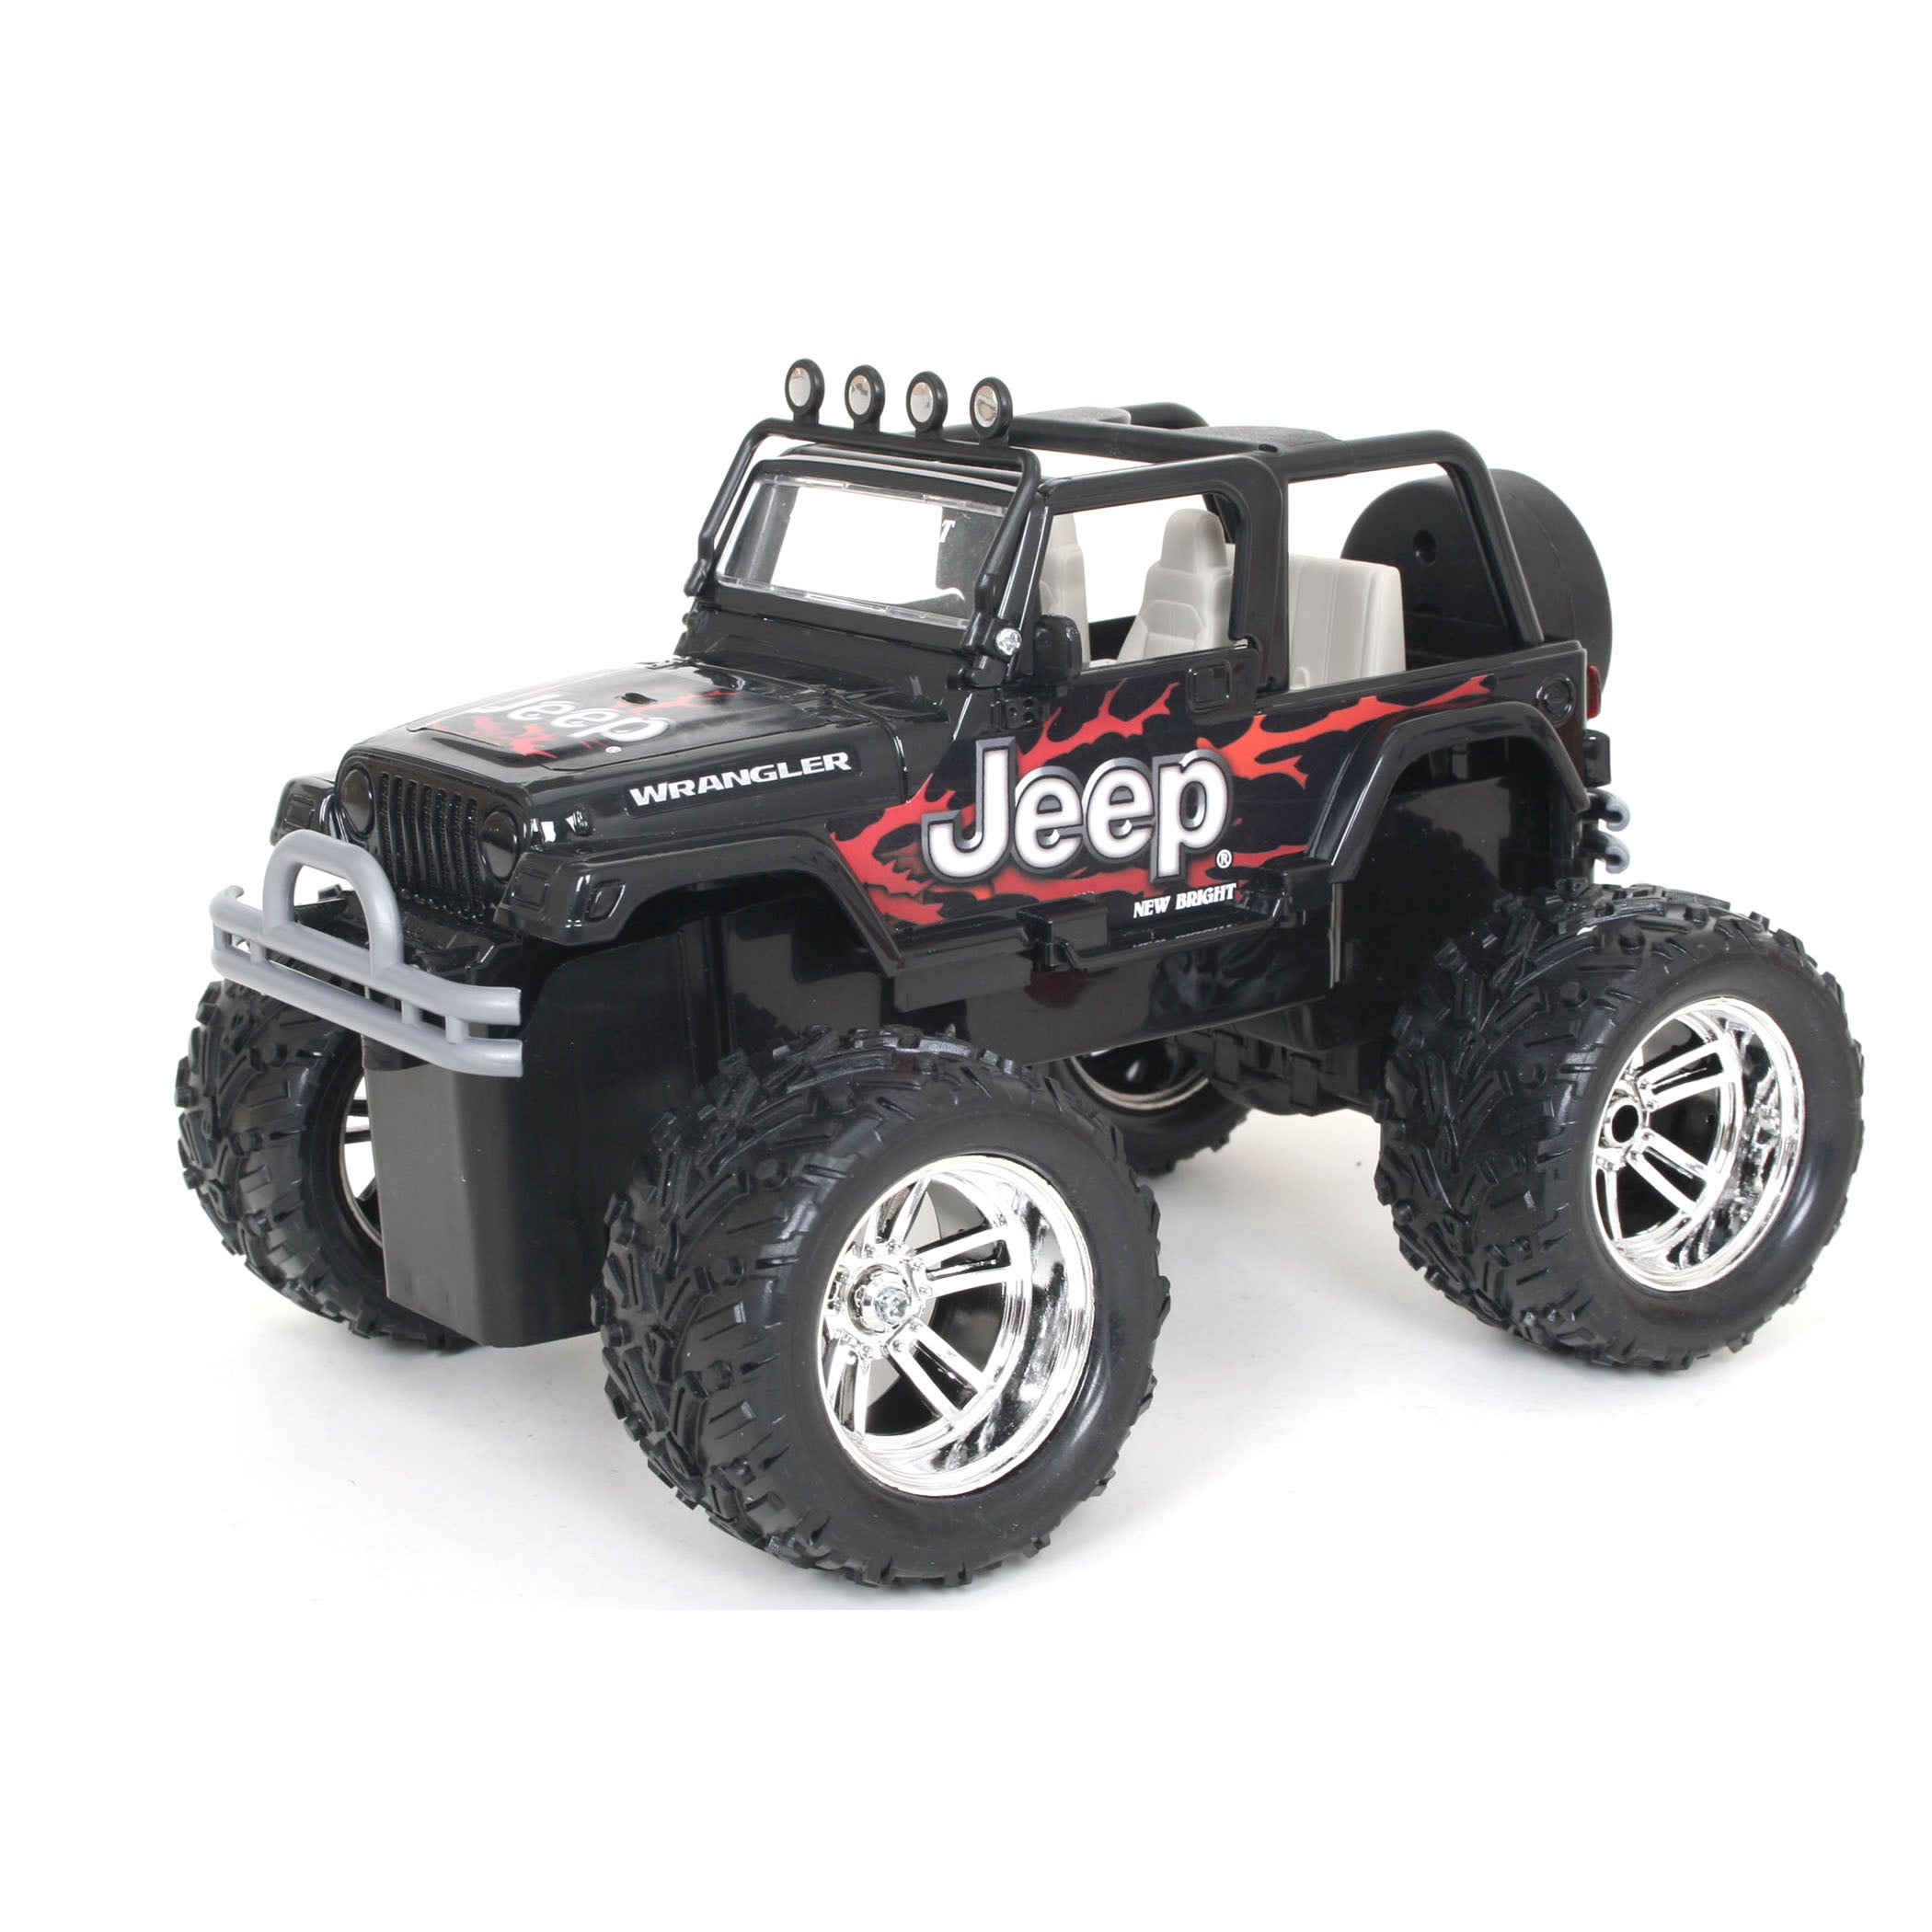 Jeep R/C Full Function Jeep Wrangler